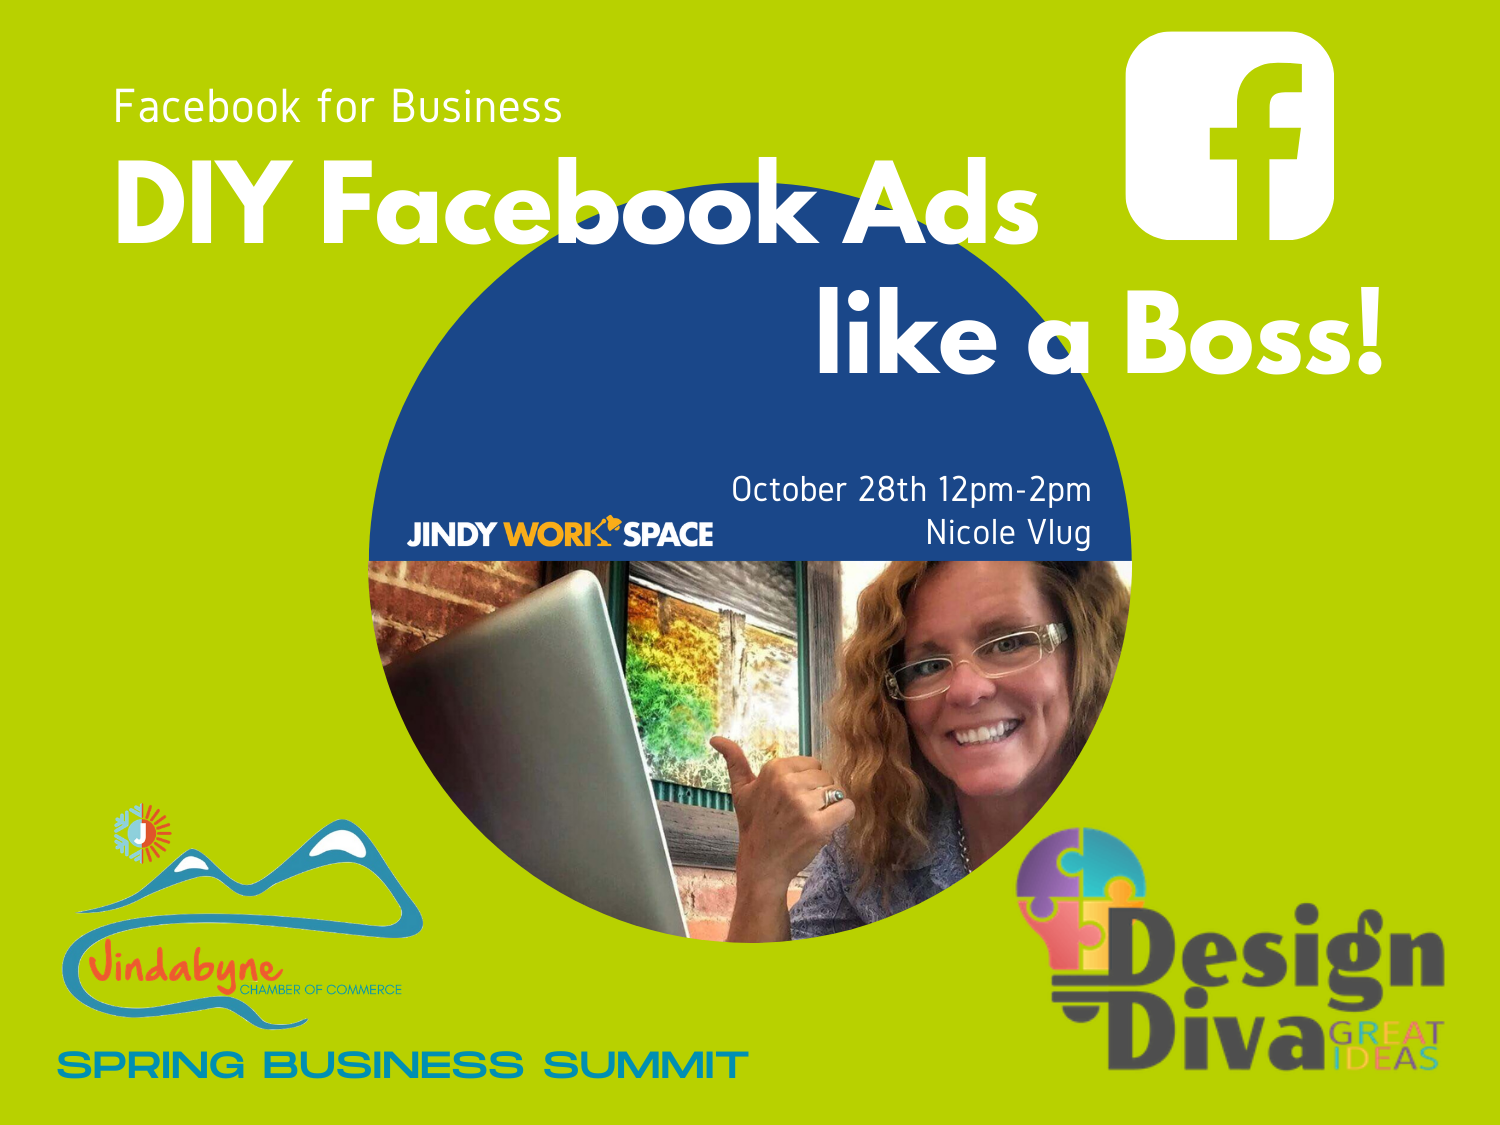 DIY Facebook Ads like a Boss!